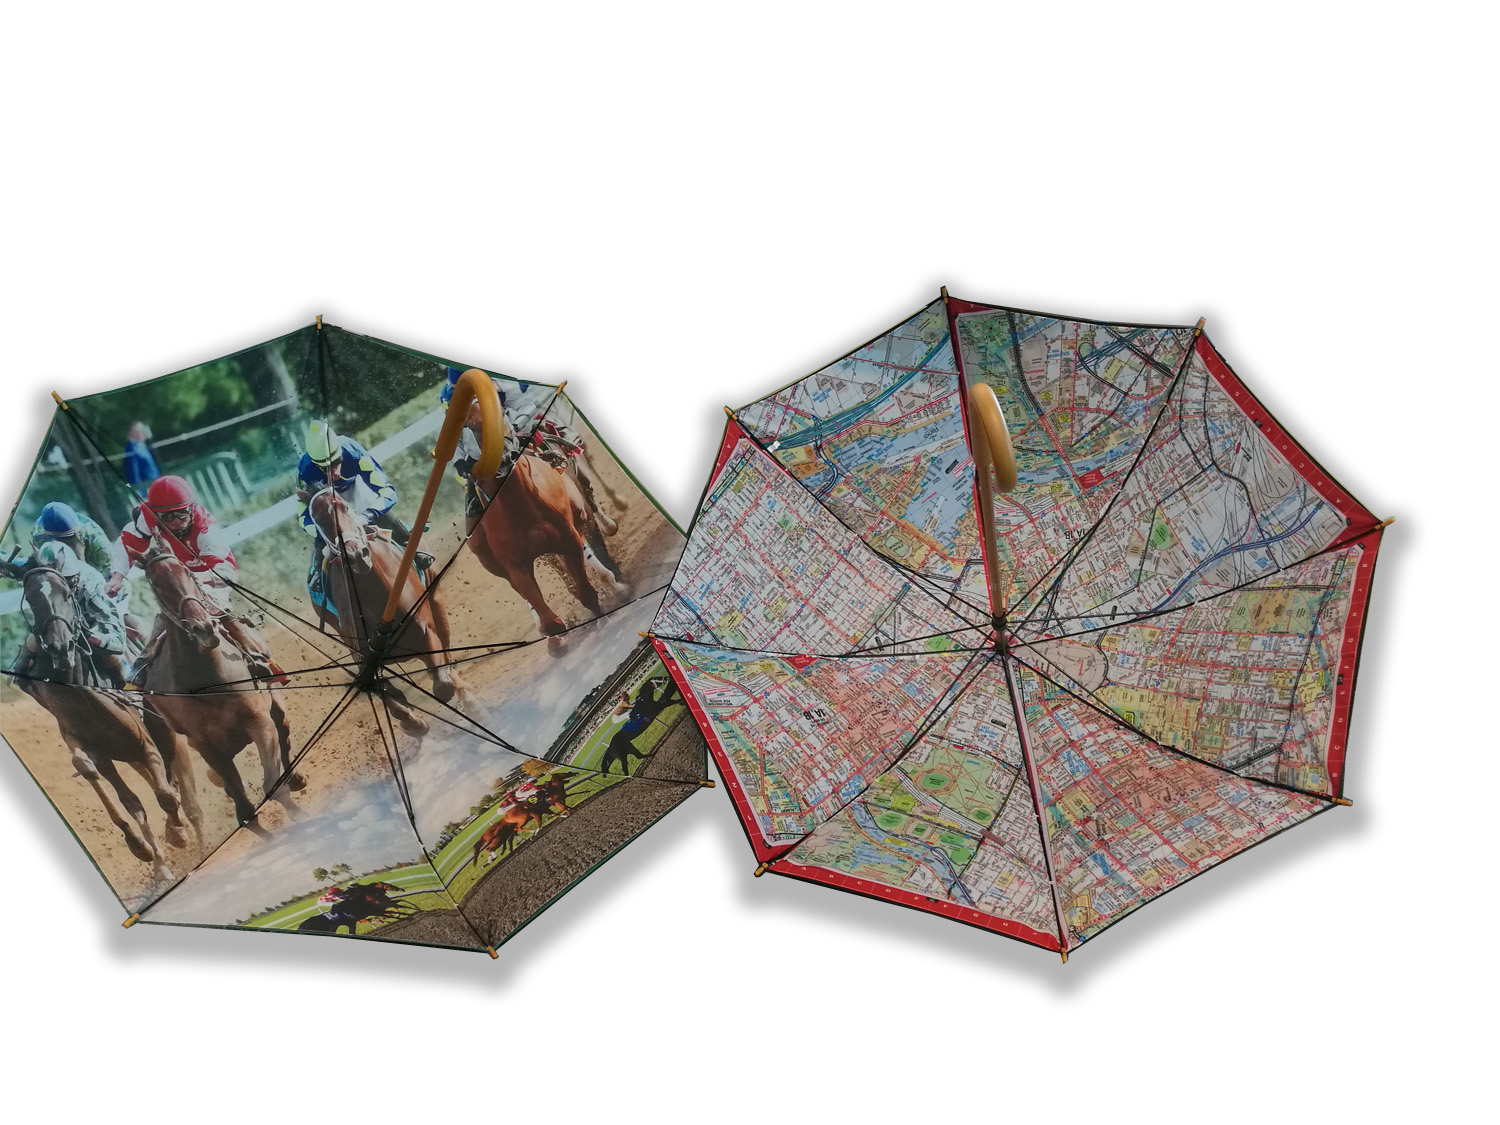 two open umbrellas one with horses racing on the inside and one with a map across the inside of umbrella